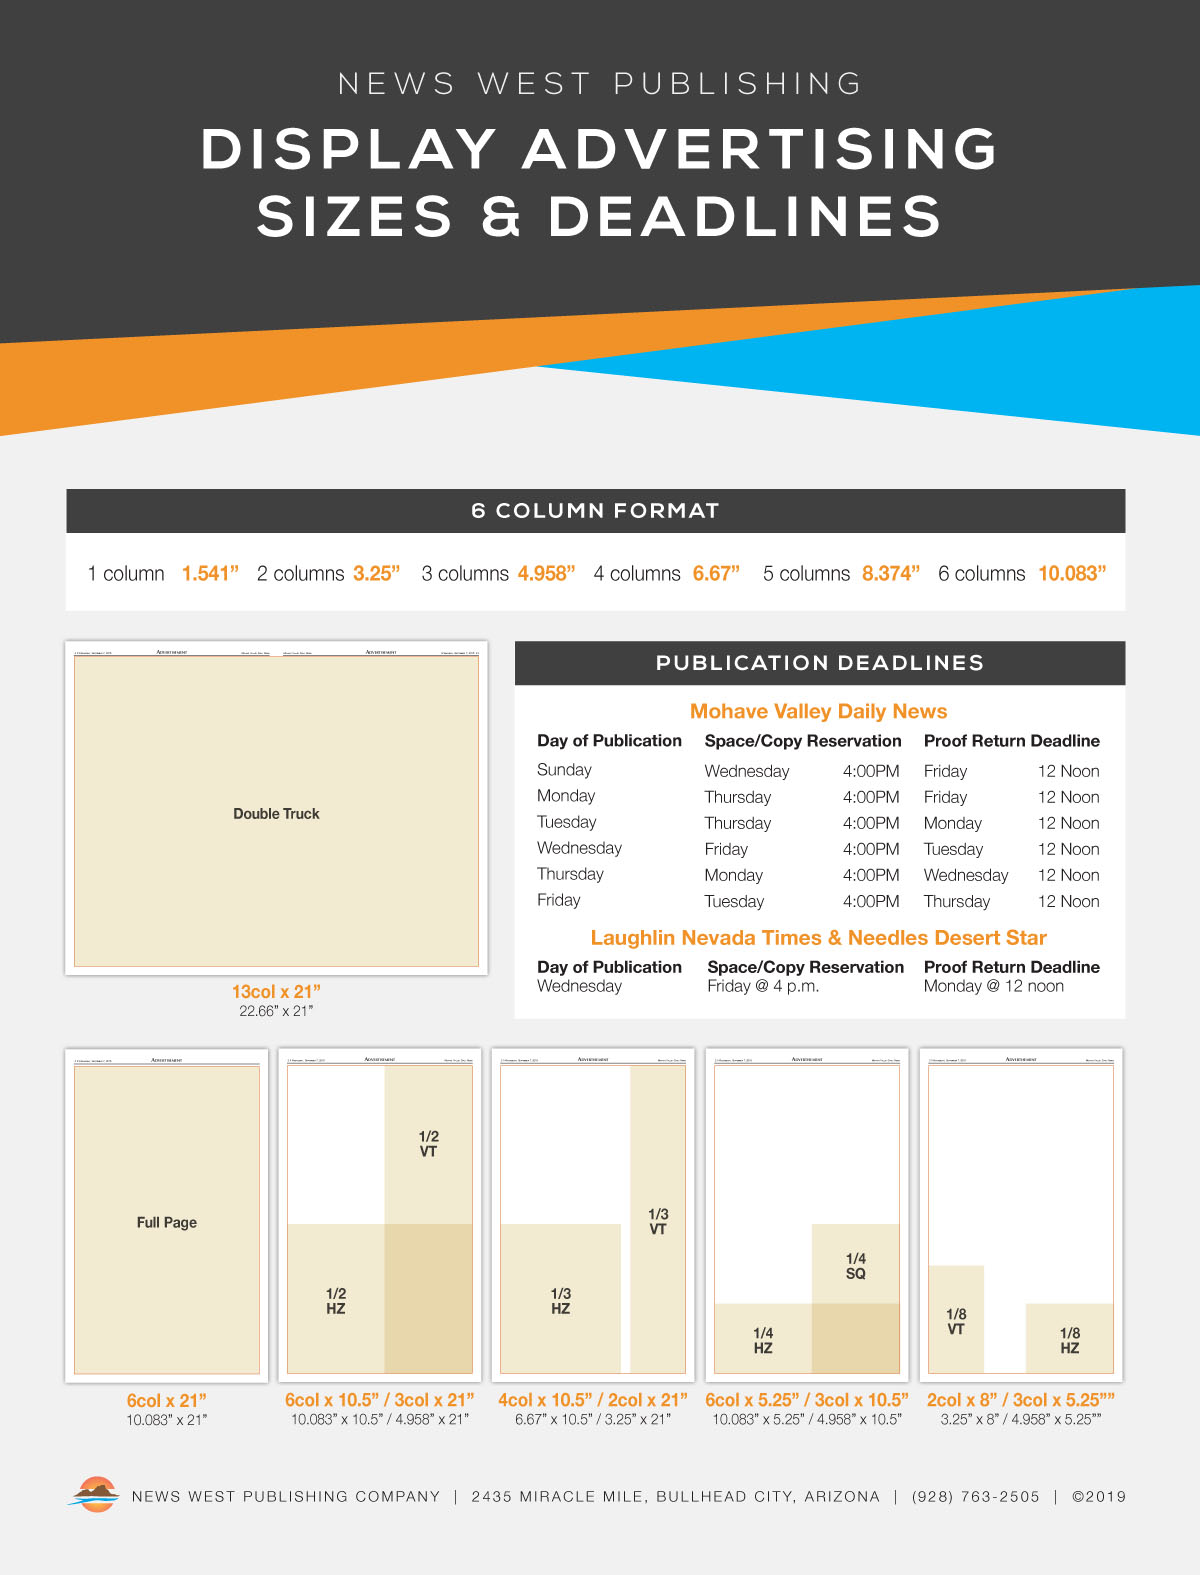 09 - Display Advertising Sizes & Deadlines 2019